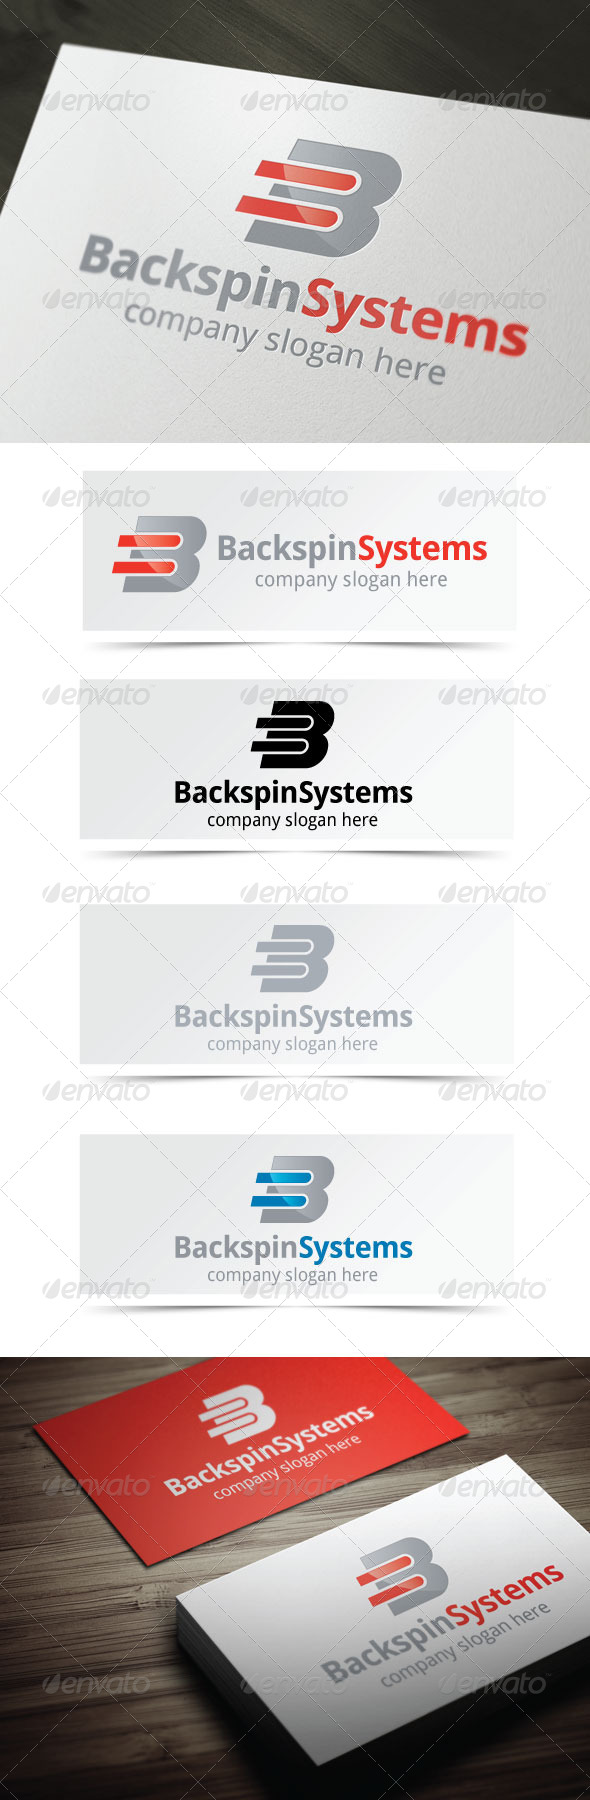 Backspin Systems - Letters Logo Templates